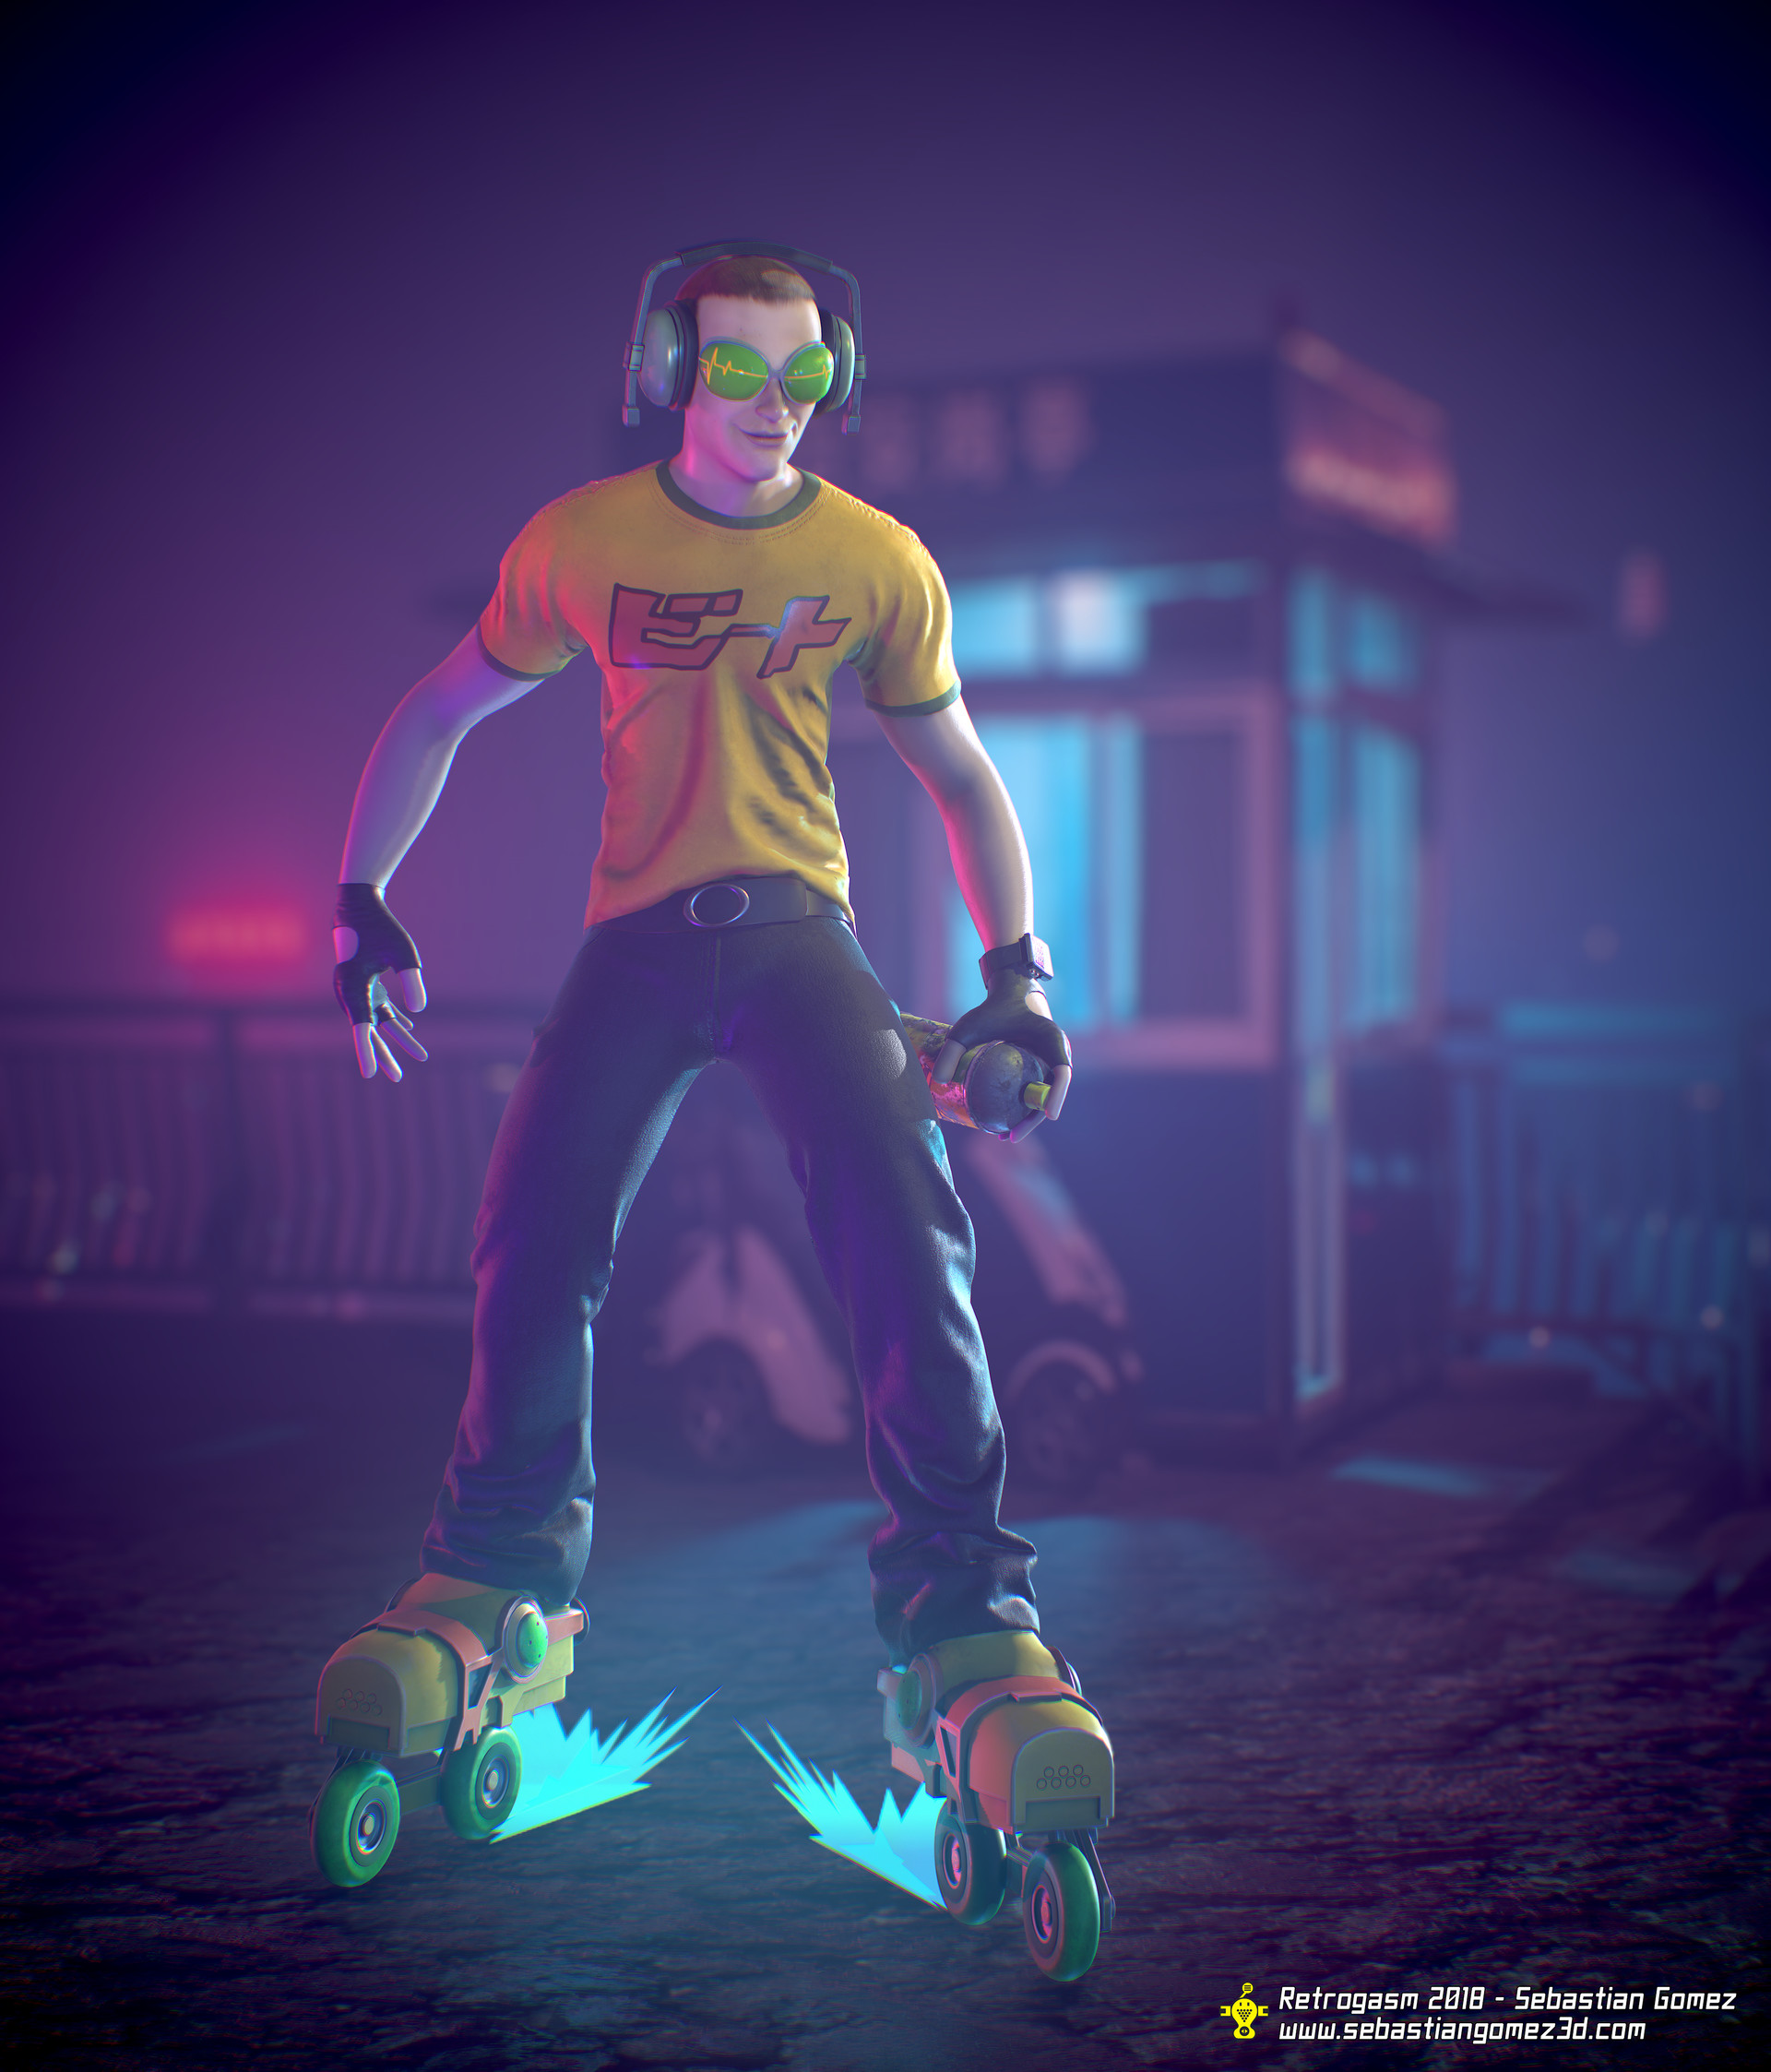 Artstation Beat Jet Set Radio Retrogasm 2018 Sebastian Gomez